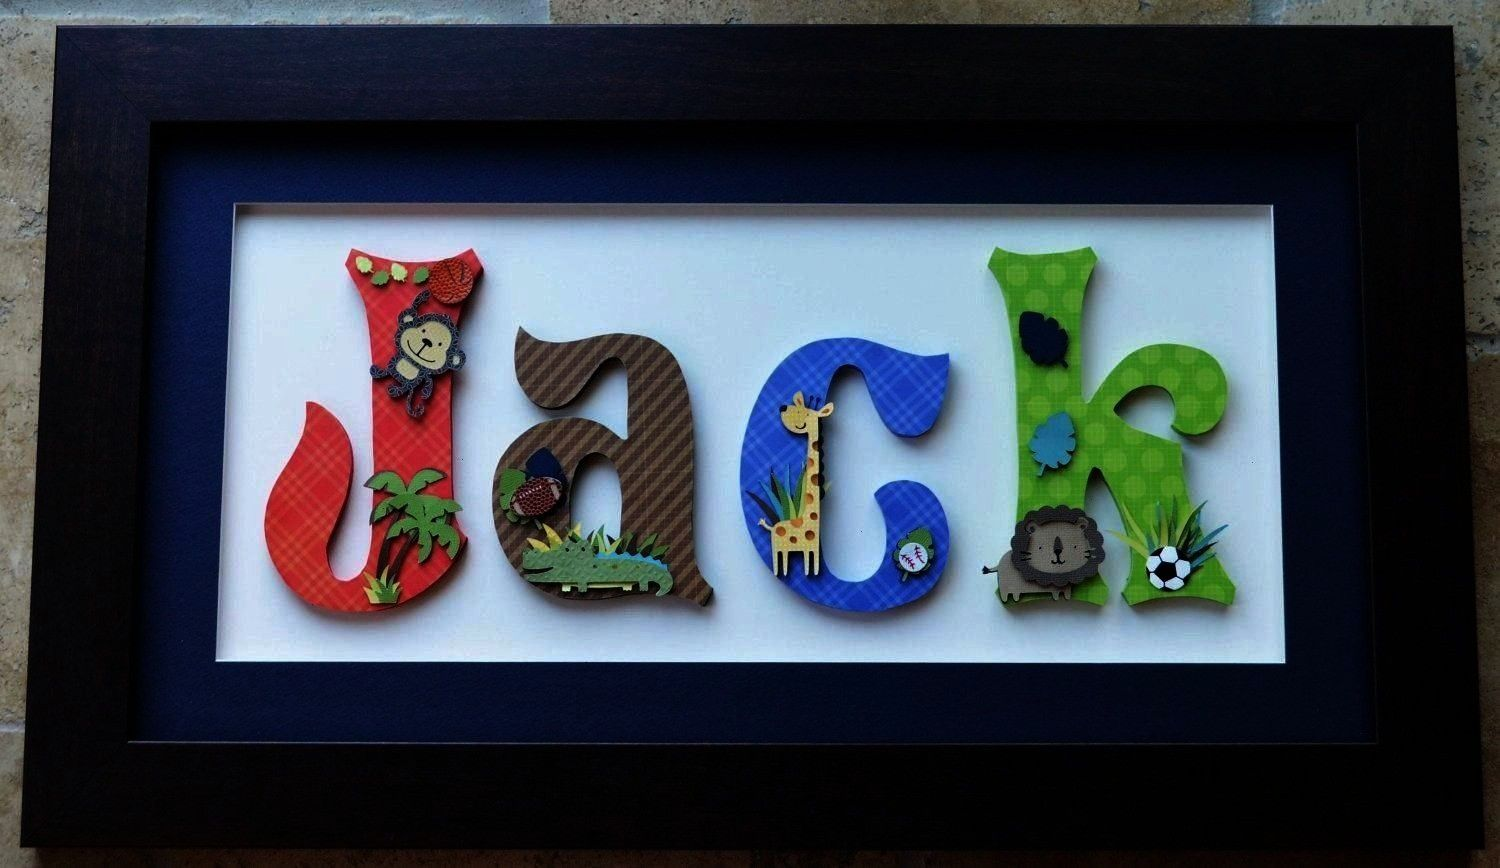 Framed Boys Personalized Childrens Art Jungle Theme  Four 8 letter hei Items similar to Framed Boys Personalized Childrens Art Jungle Theme  Four 8 letter height letters...